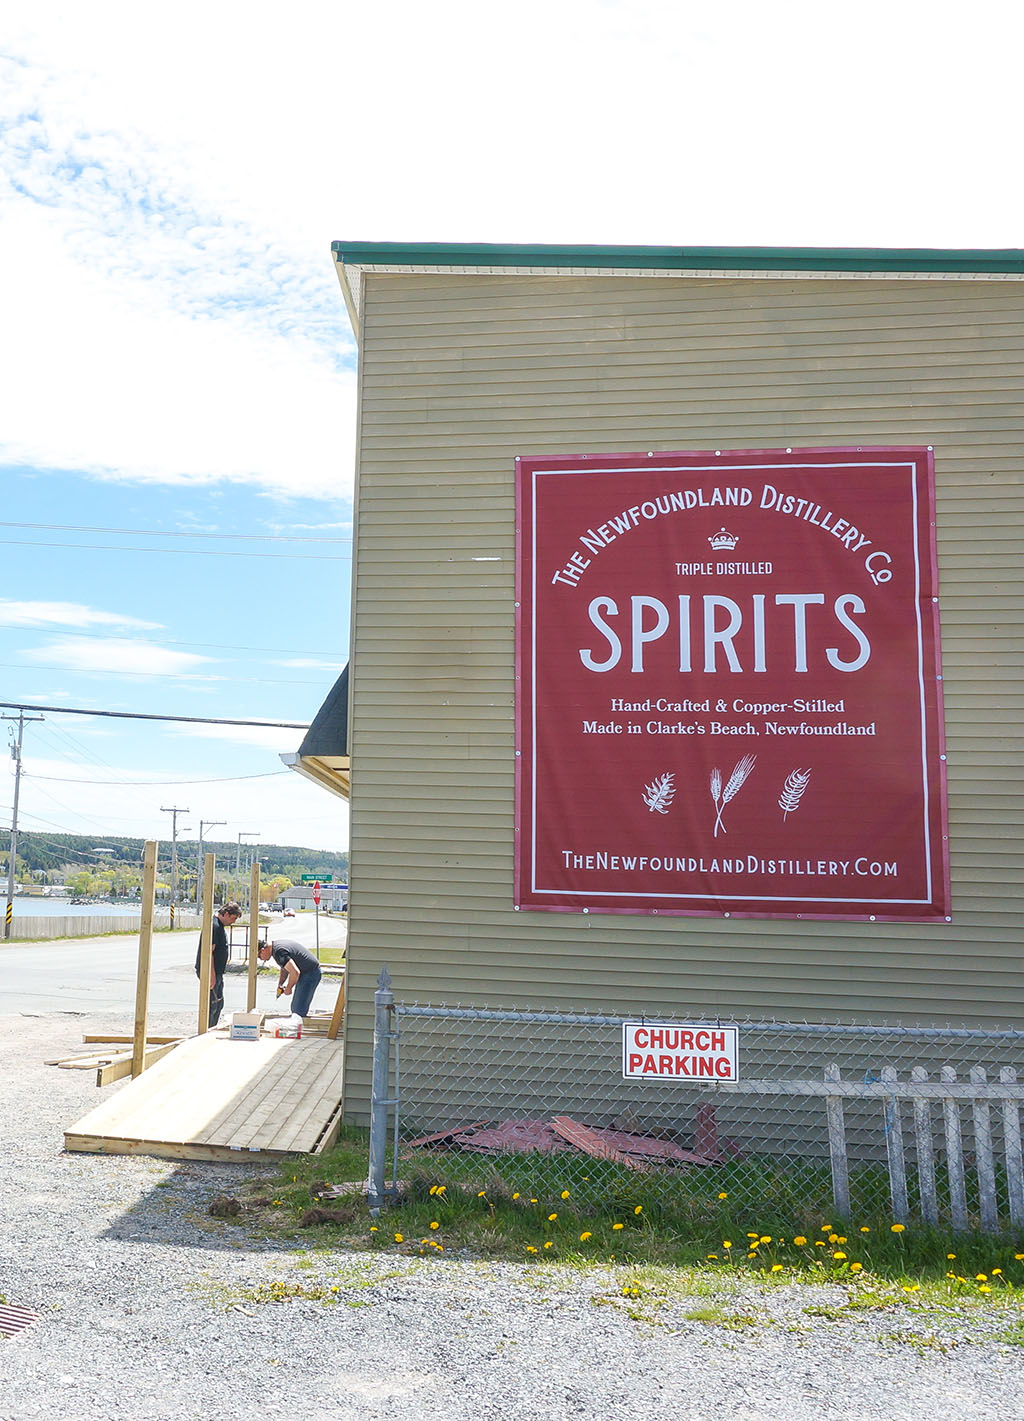 The Newfoundland Distillery